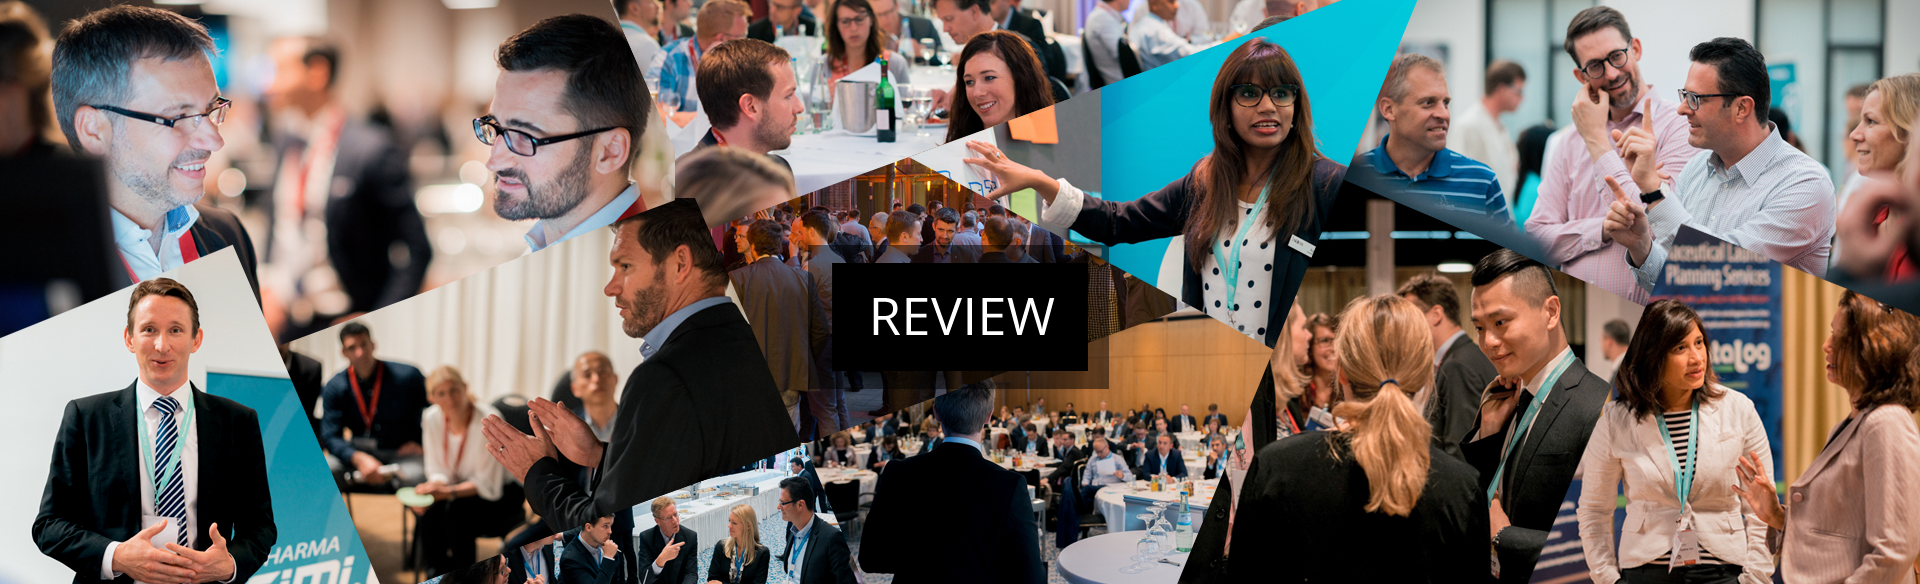 Competitive Intelligence Event Review